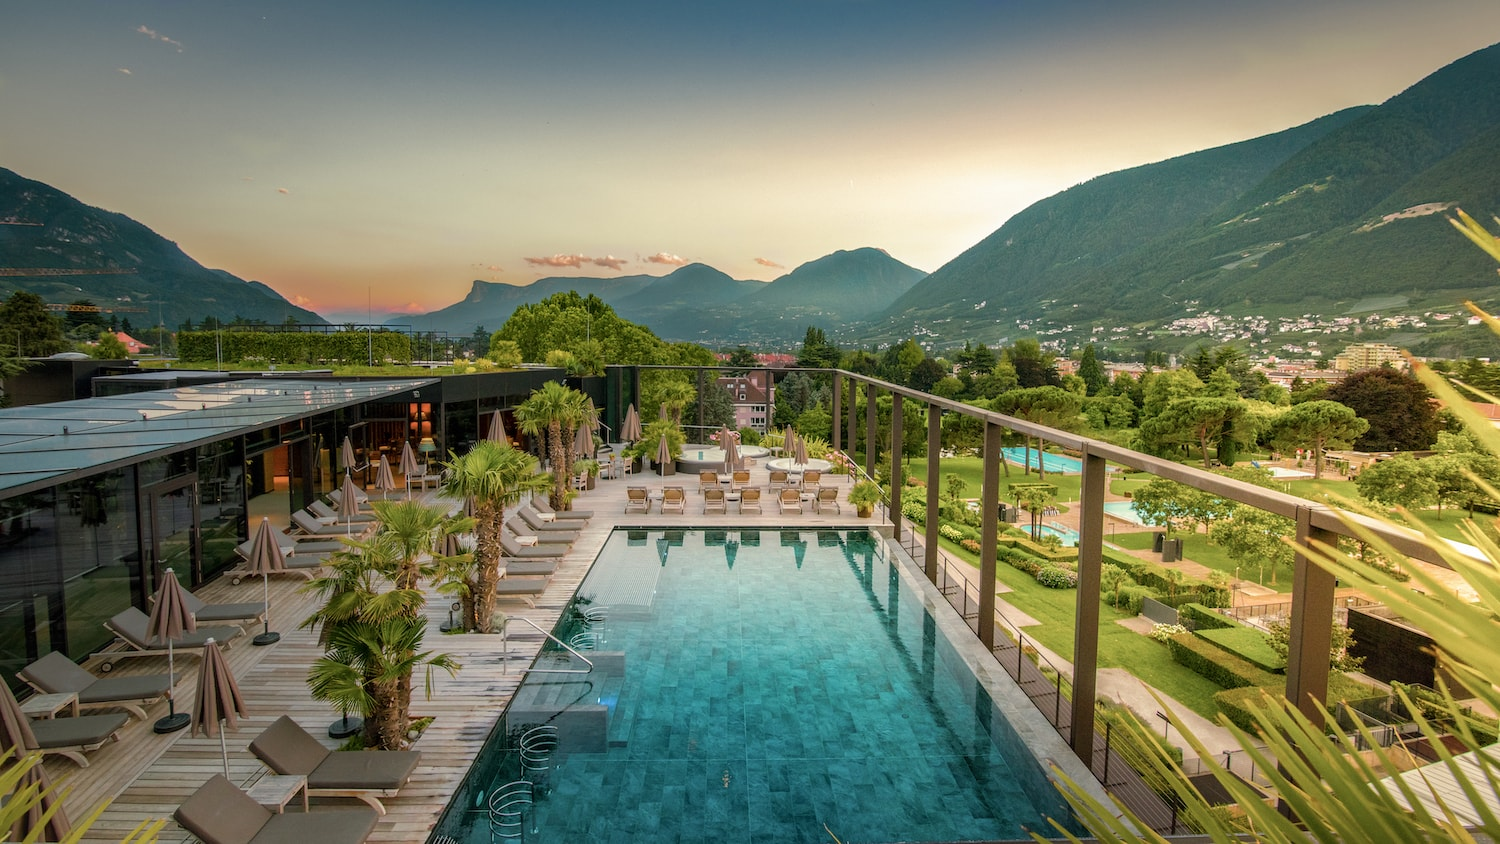 Hotel Therme Meran Skybar-Terrasse